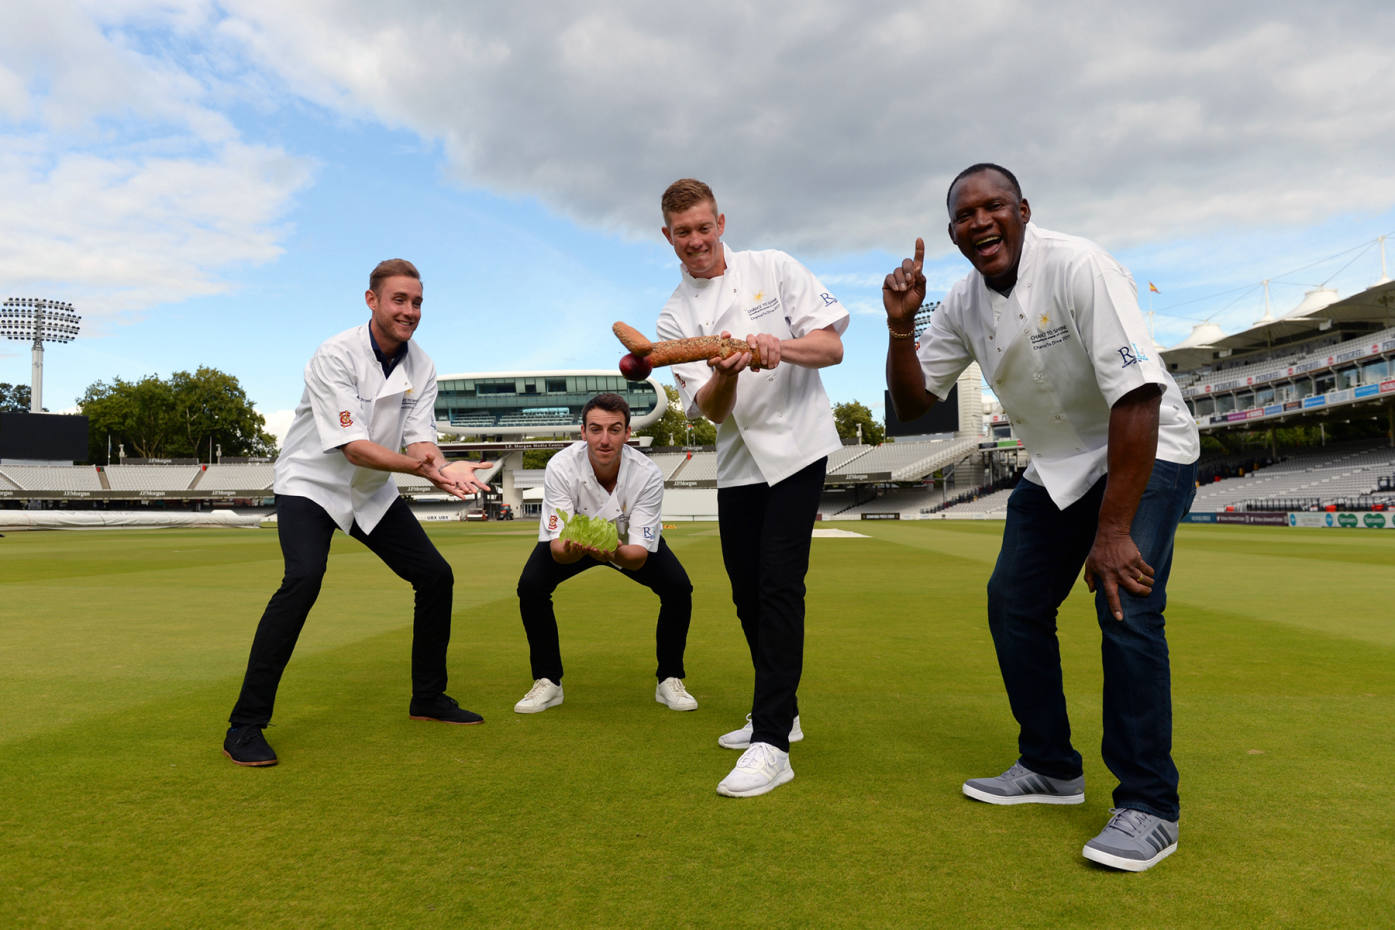 From left: Stuart Broad, Toby Roland-Jones, Keaton Jennings and Devon Malcolm take part in Chance To Dine, 2017